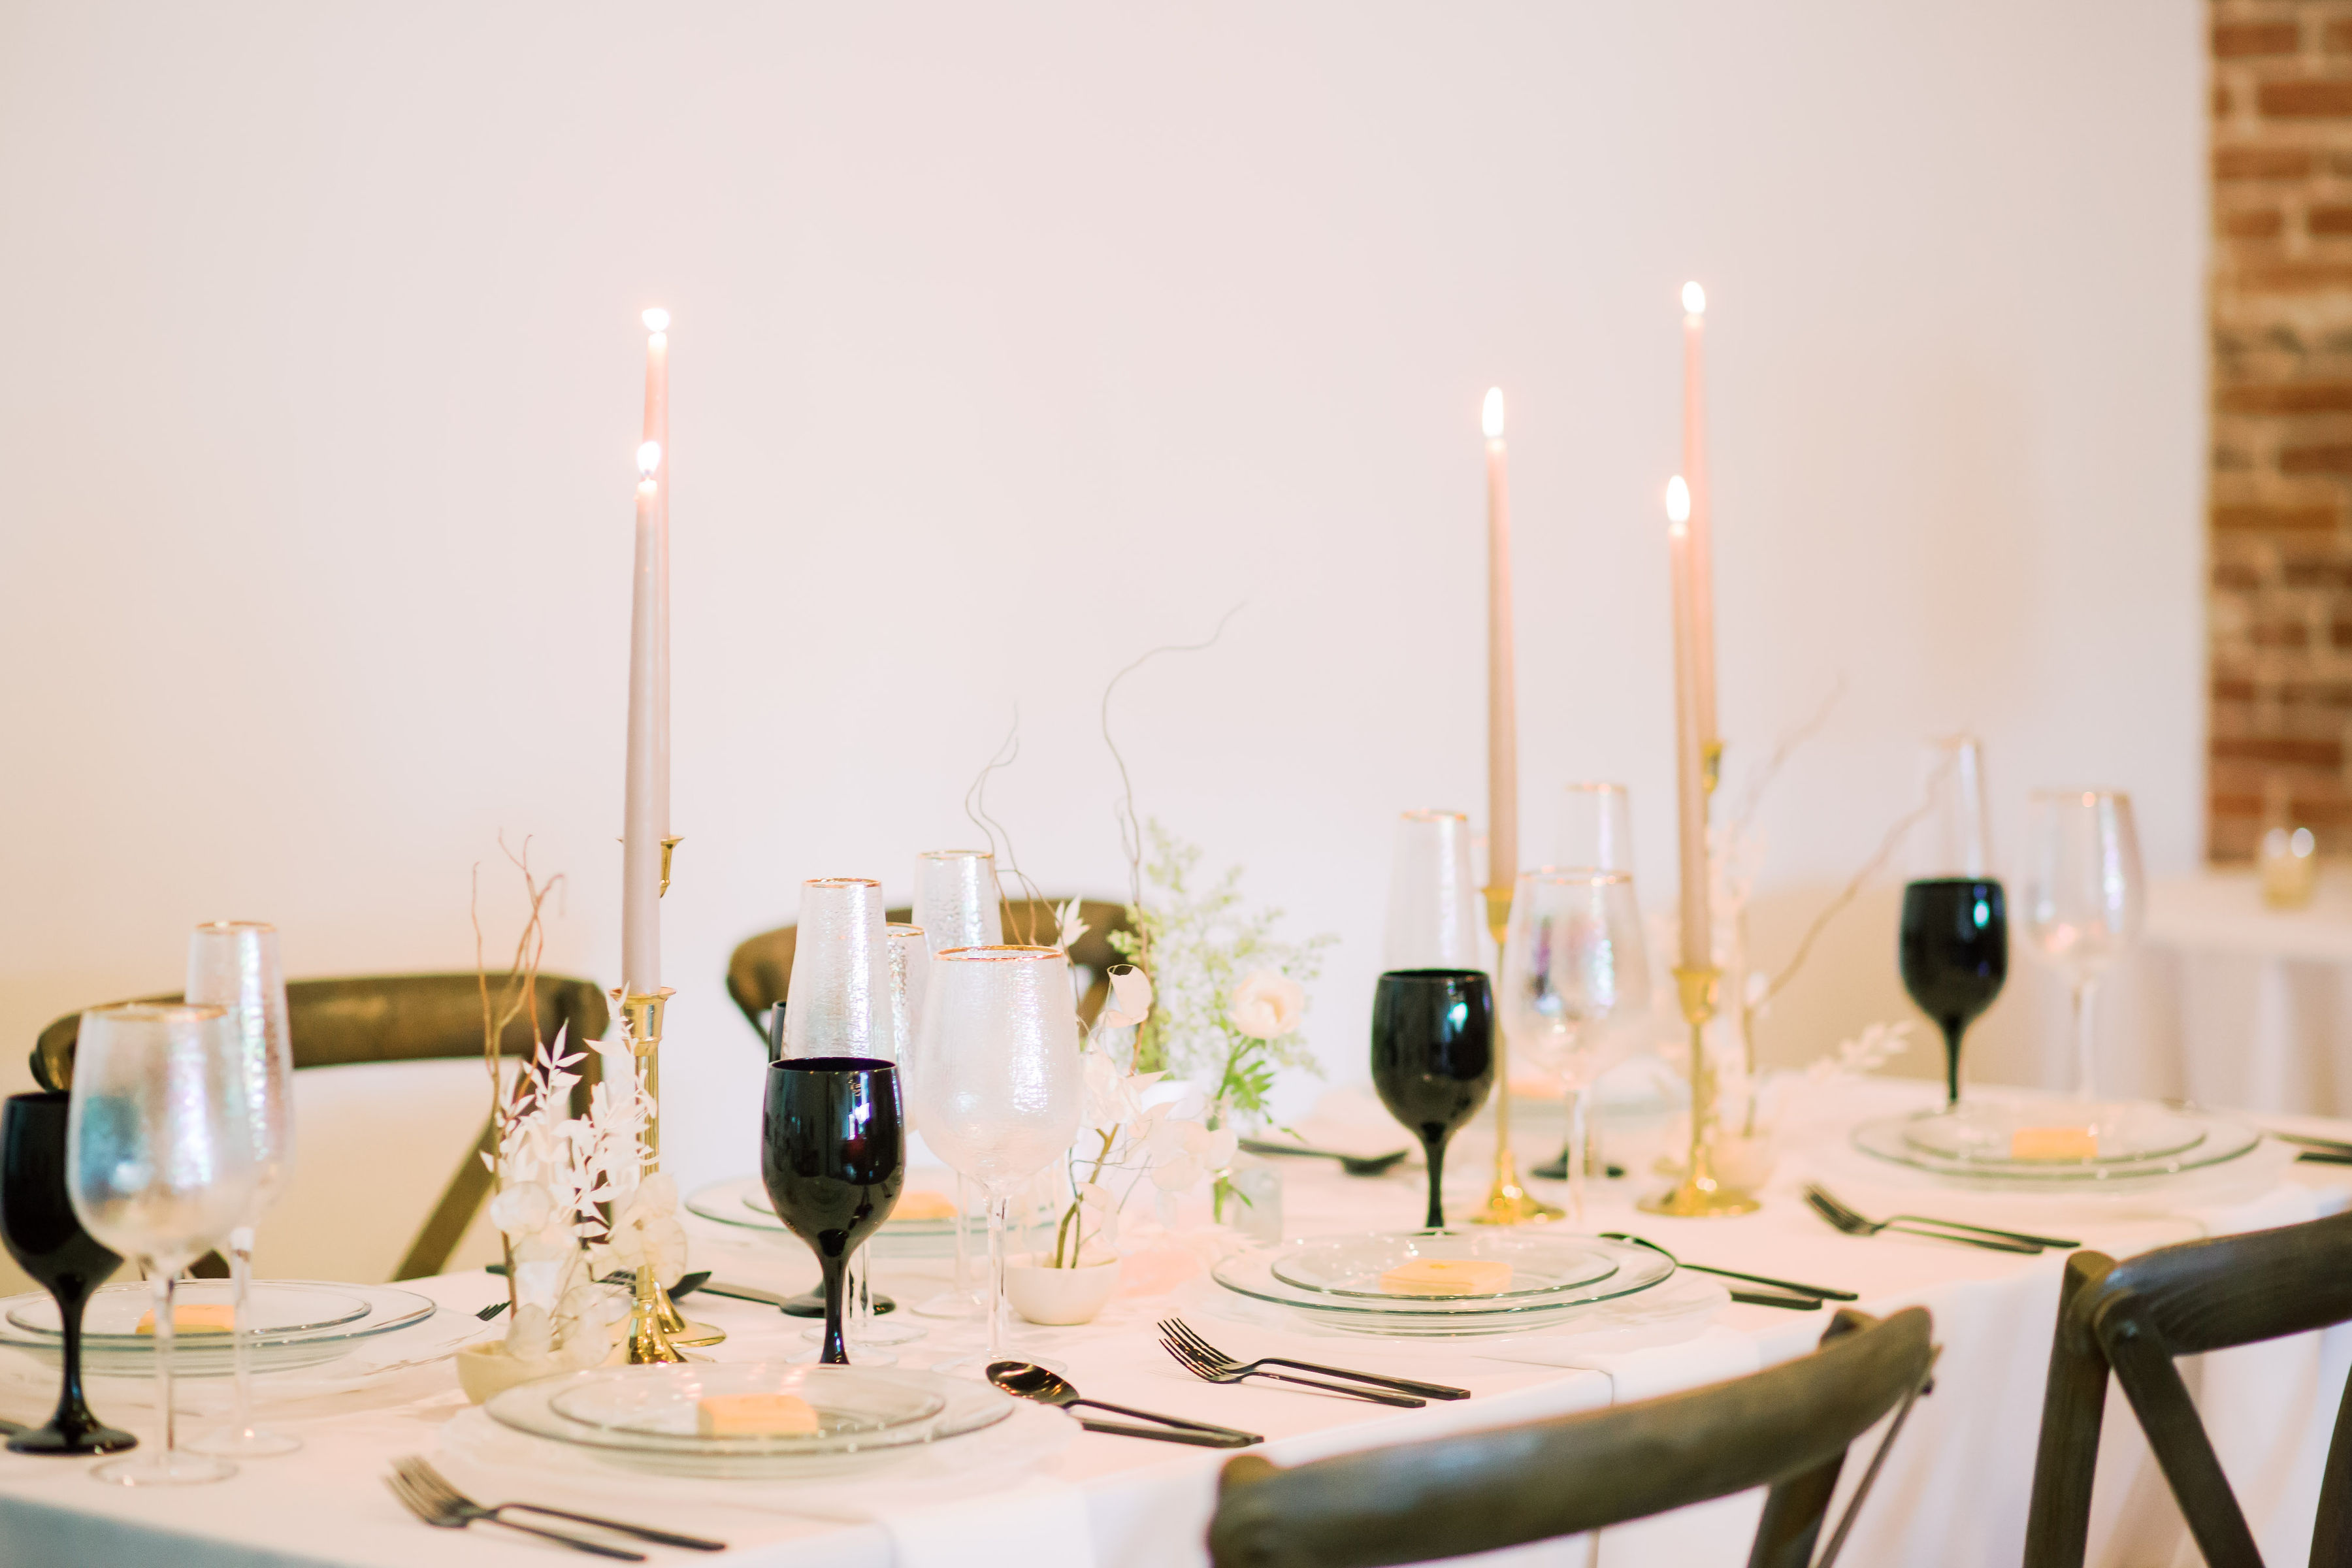 Dinner Party Styled Shoot Image 1